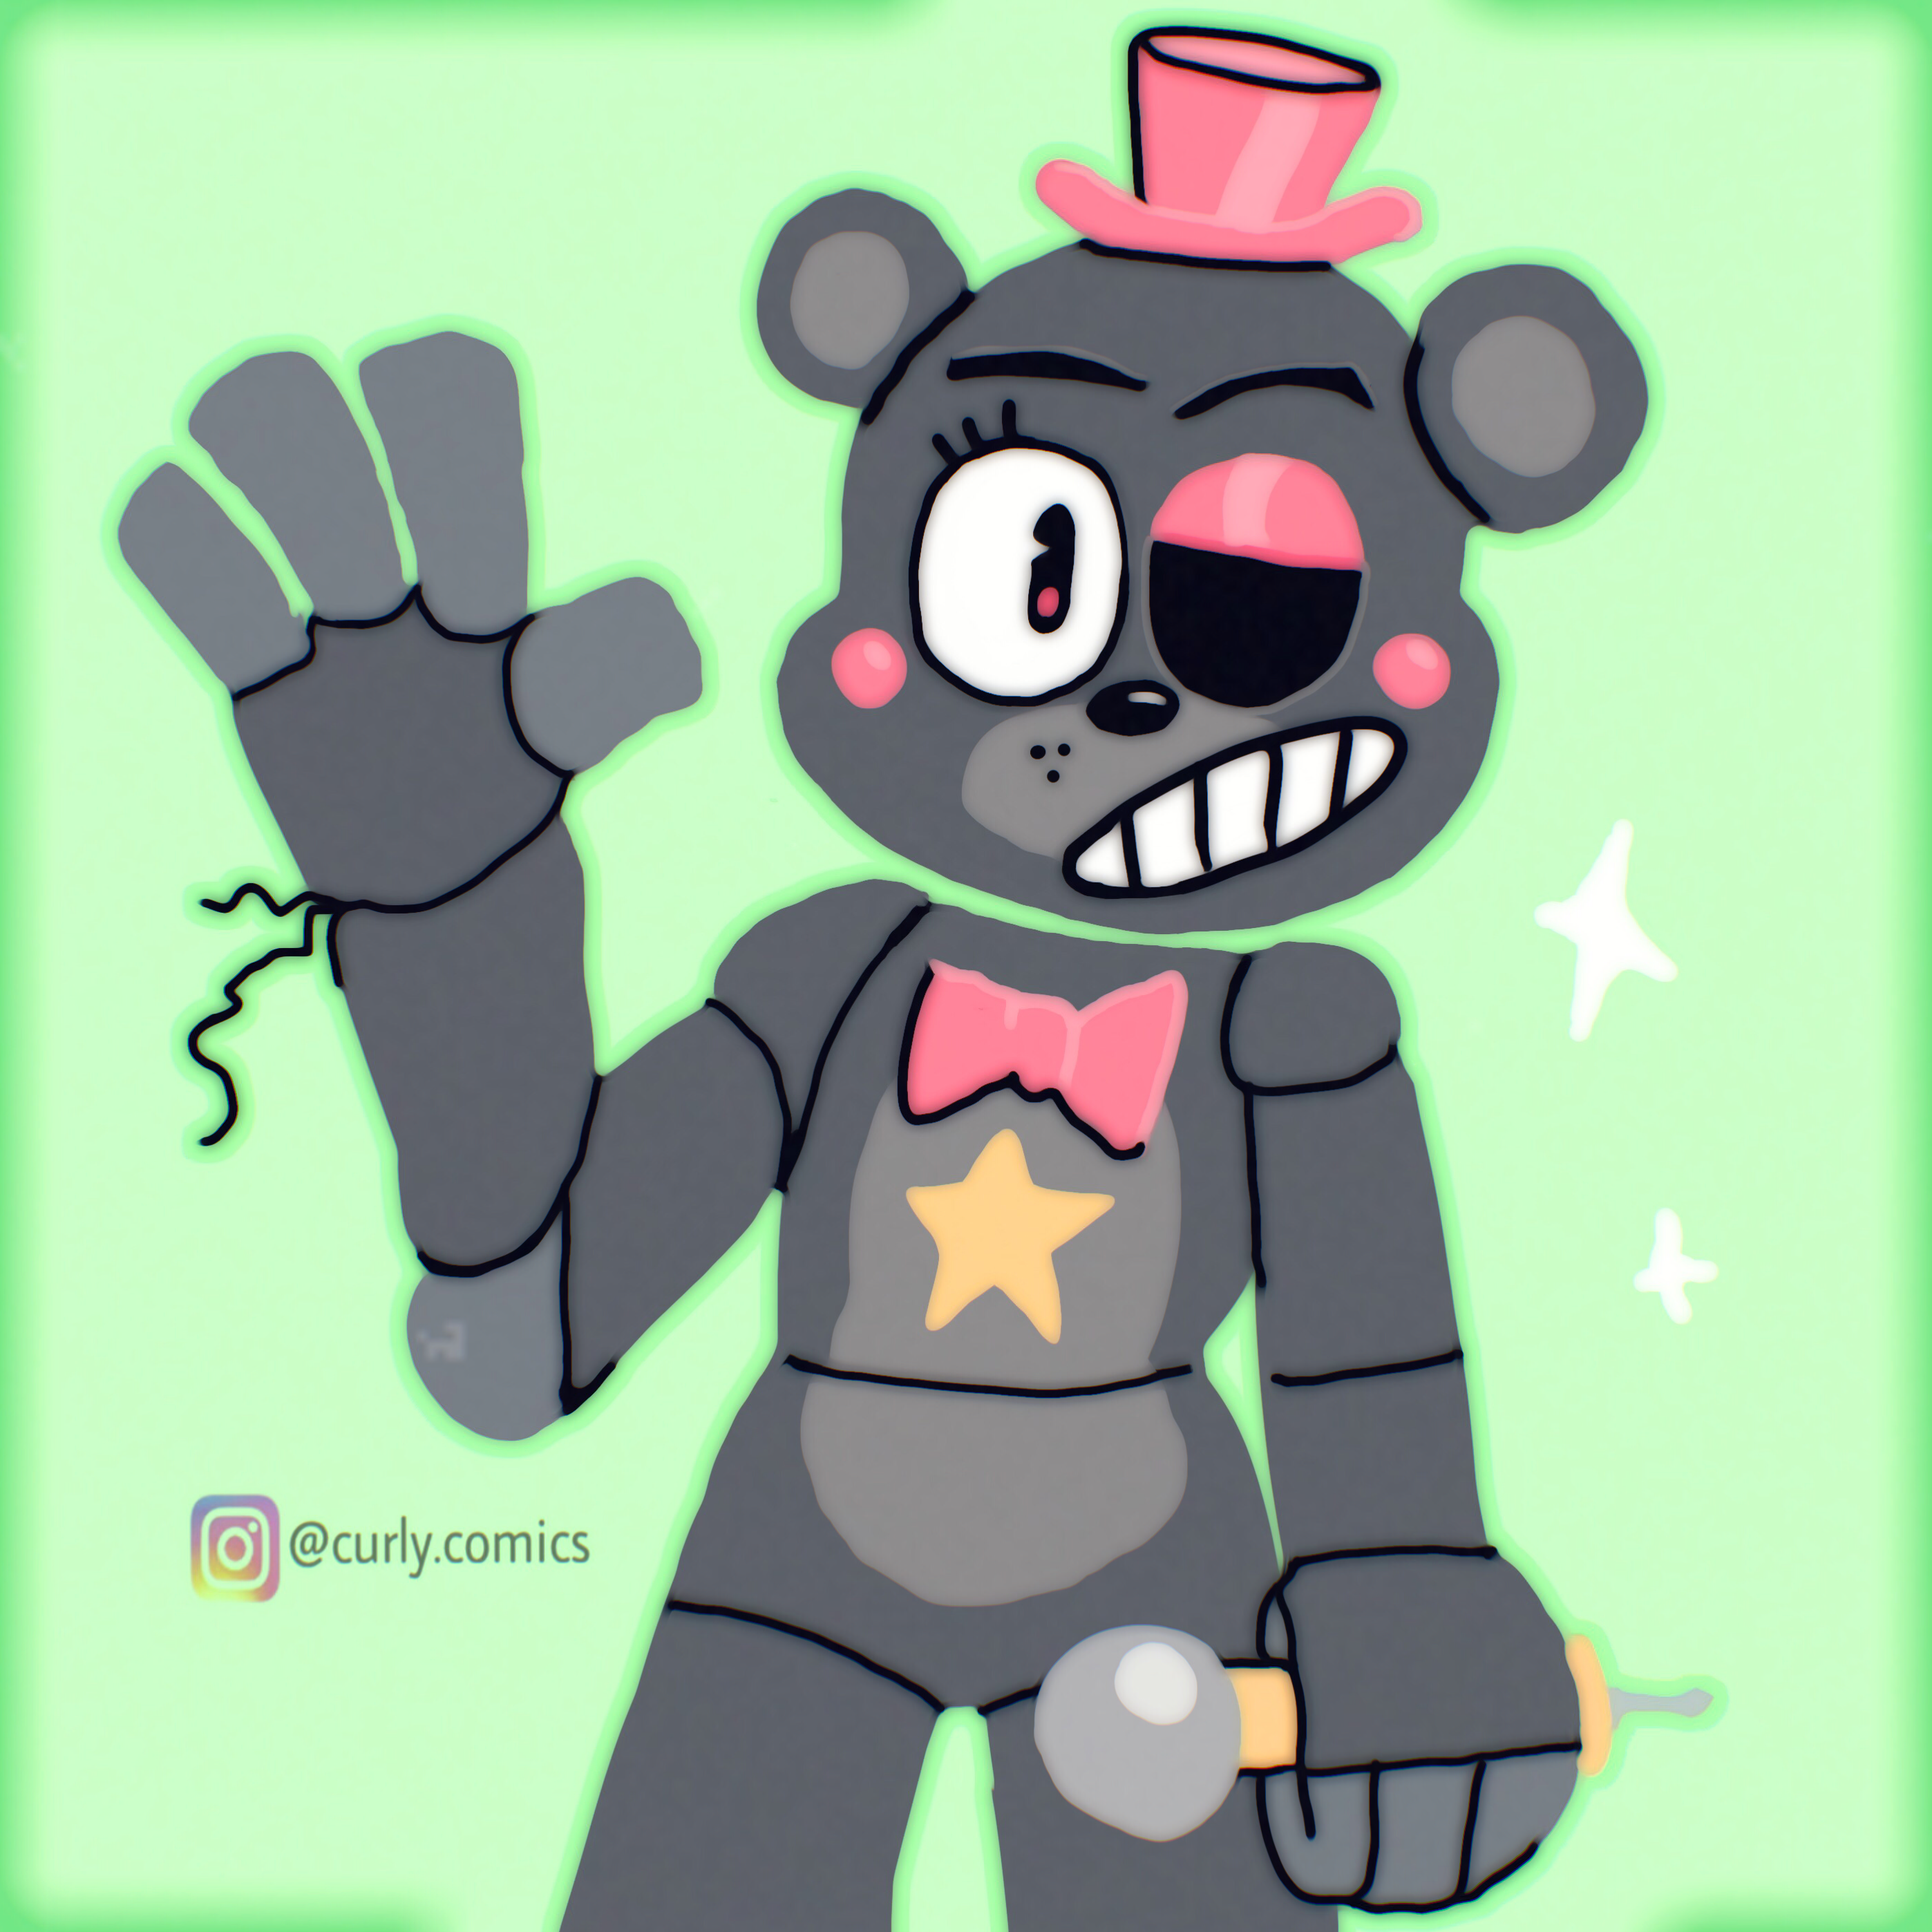 8th lefty clipart jpg download A snazzy and stylized Lefty! : fivenightsatfreddys jpg download